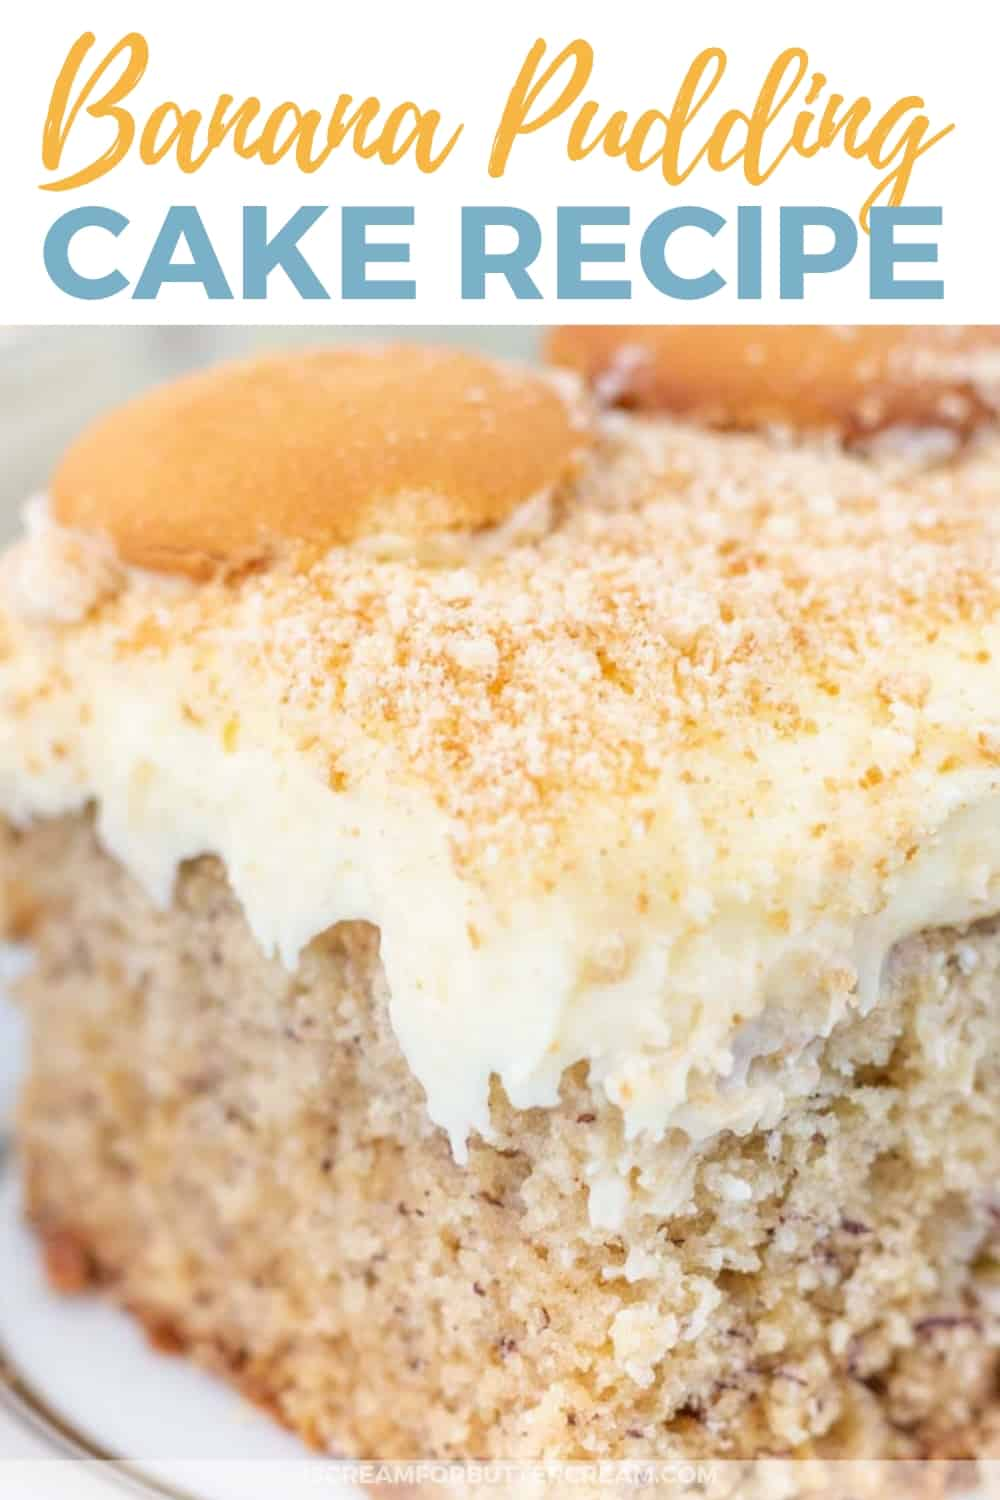 Banana Pudding Cake New Pinterest Graphic 2